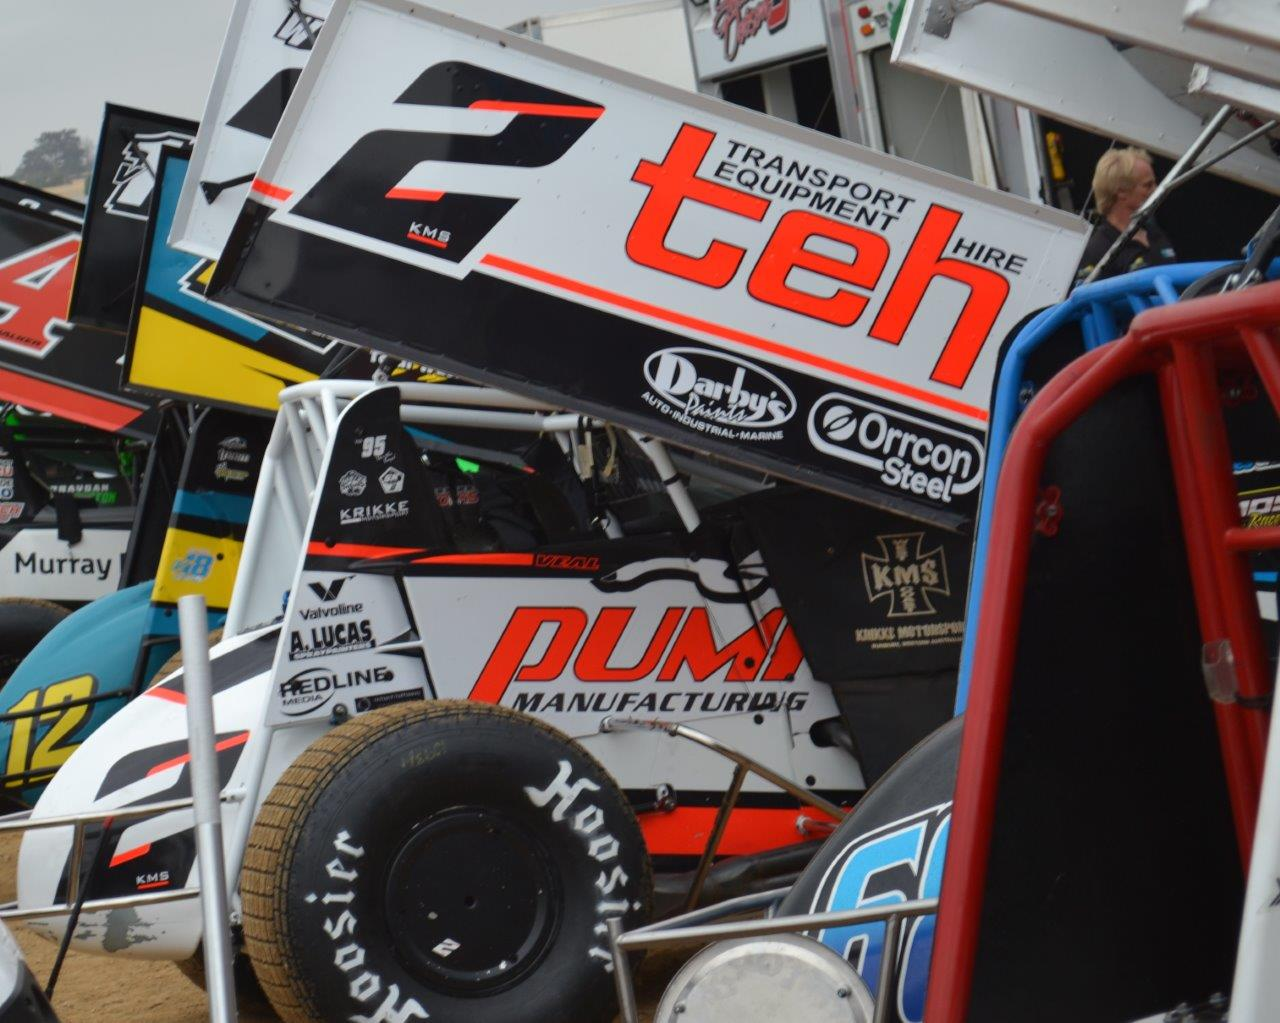 Jamie Veal driving etn KMS W@ put on a great race with James McFadden but was swamped by Kerry Madsen with 8 laps to go